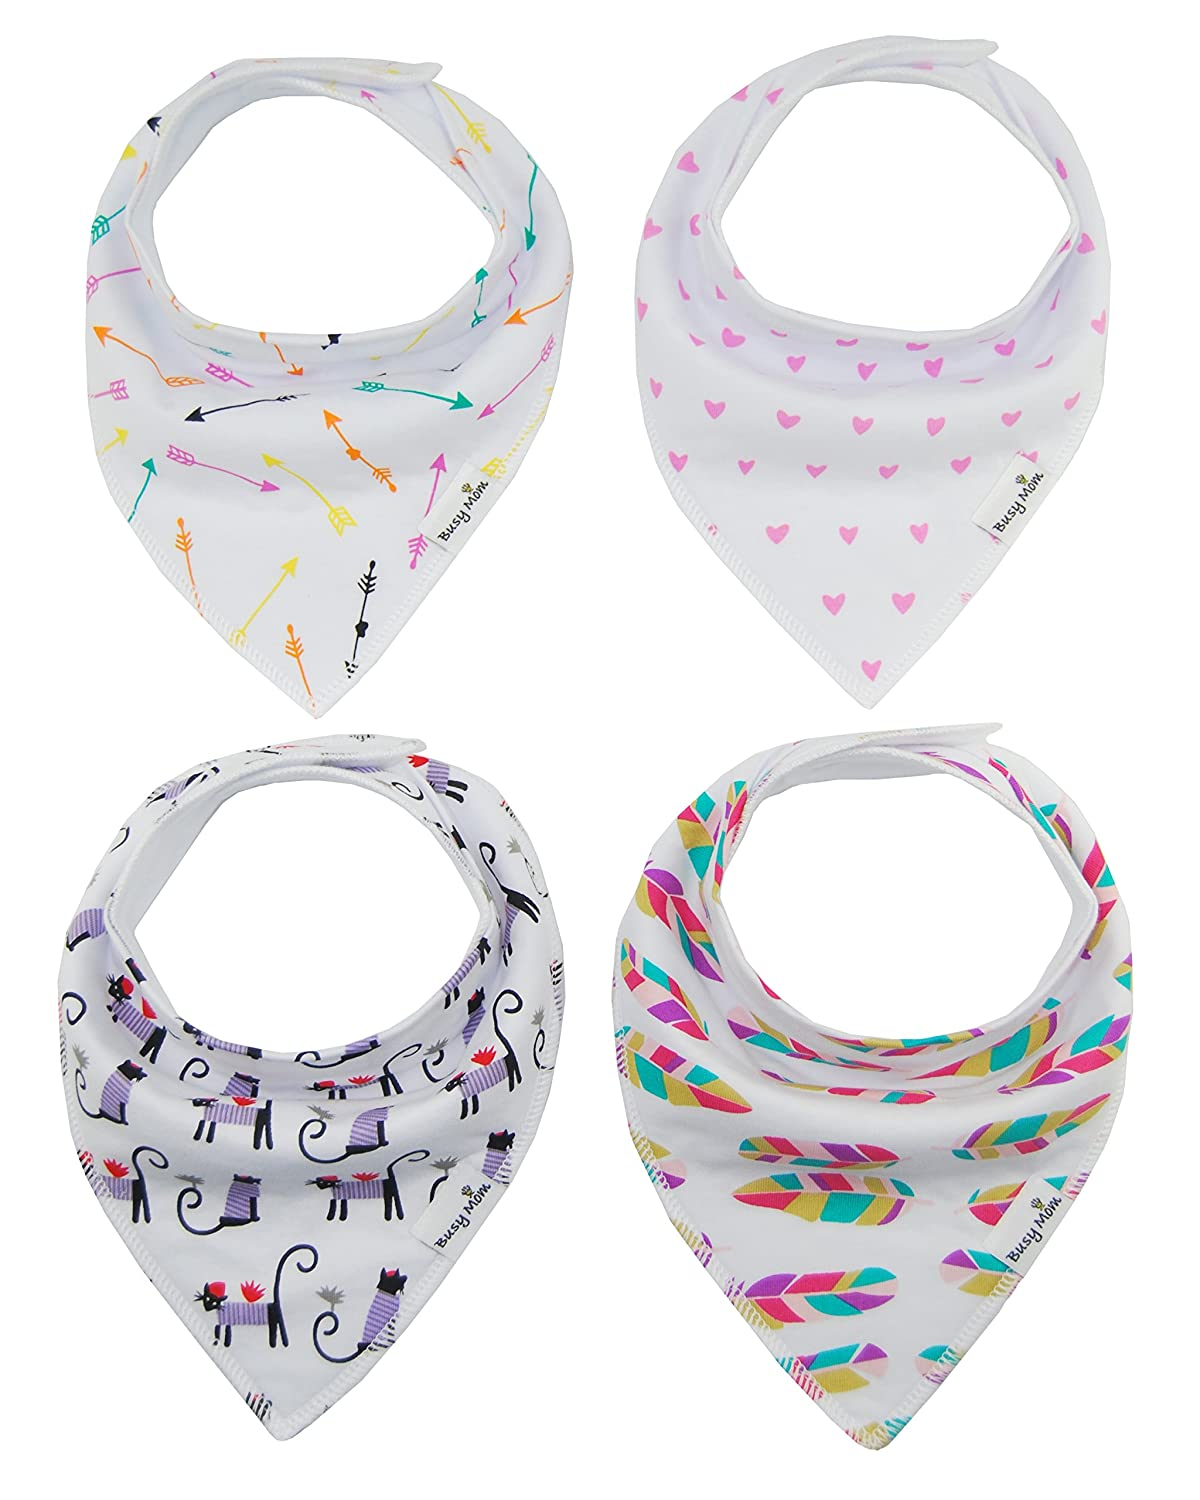 4-Pack Unisex Baby Toddlers Bandana Drool Bibs with Snaps 100% Soft Organic Cotton Unique Shower Gift Set Super Absorbent for Teething Feeding Fashion Adjustable (Y) MY004Y-1